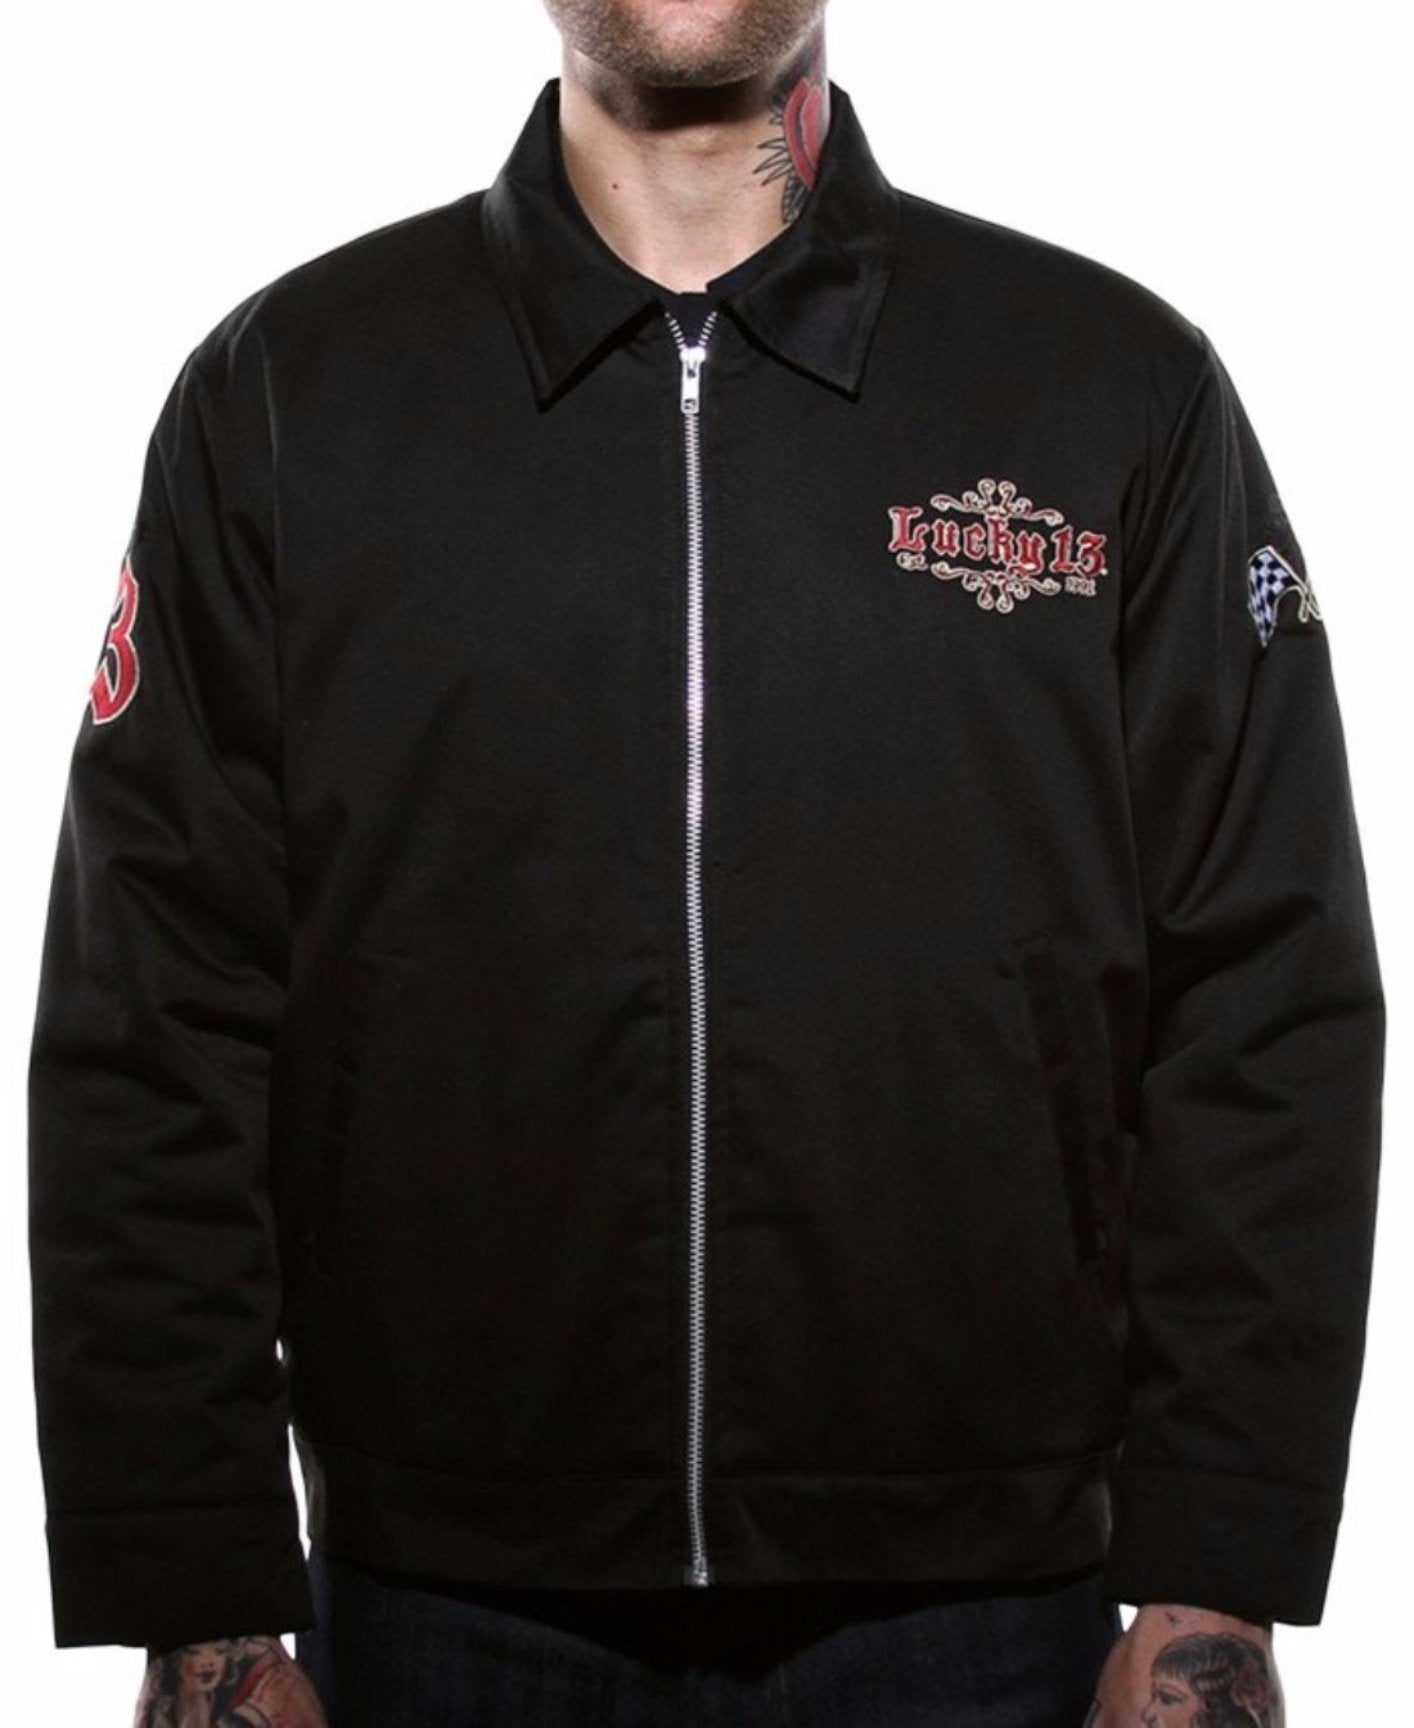 The GREASE, GAS & GLORY Jacket